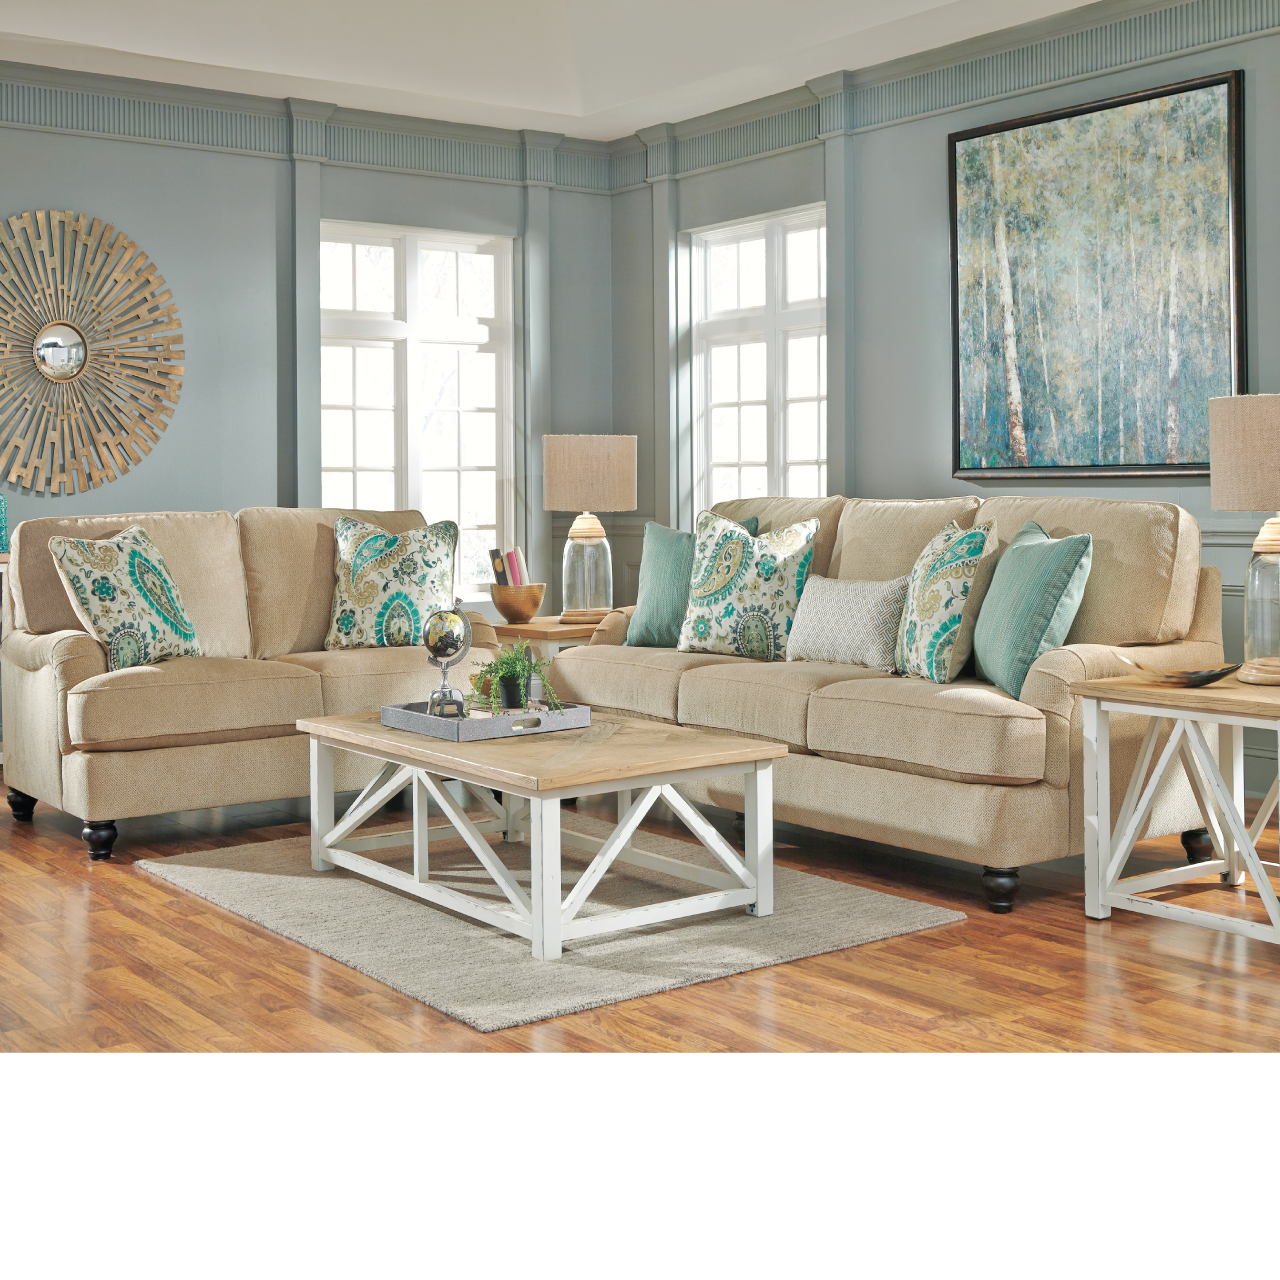 Coastal living room ideas lochian sofa by ashley for Drawing room furniture ideas